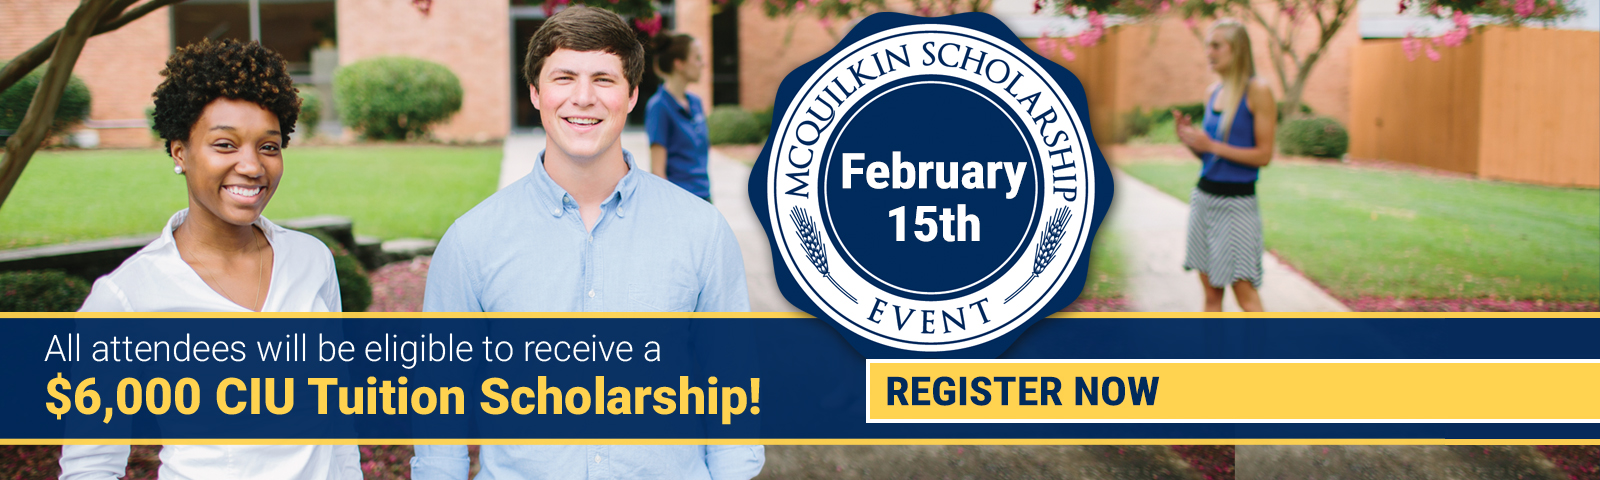 A graphic promoting the CIU McQuilkin Scholarship.